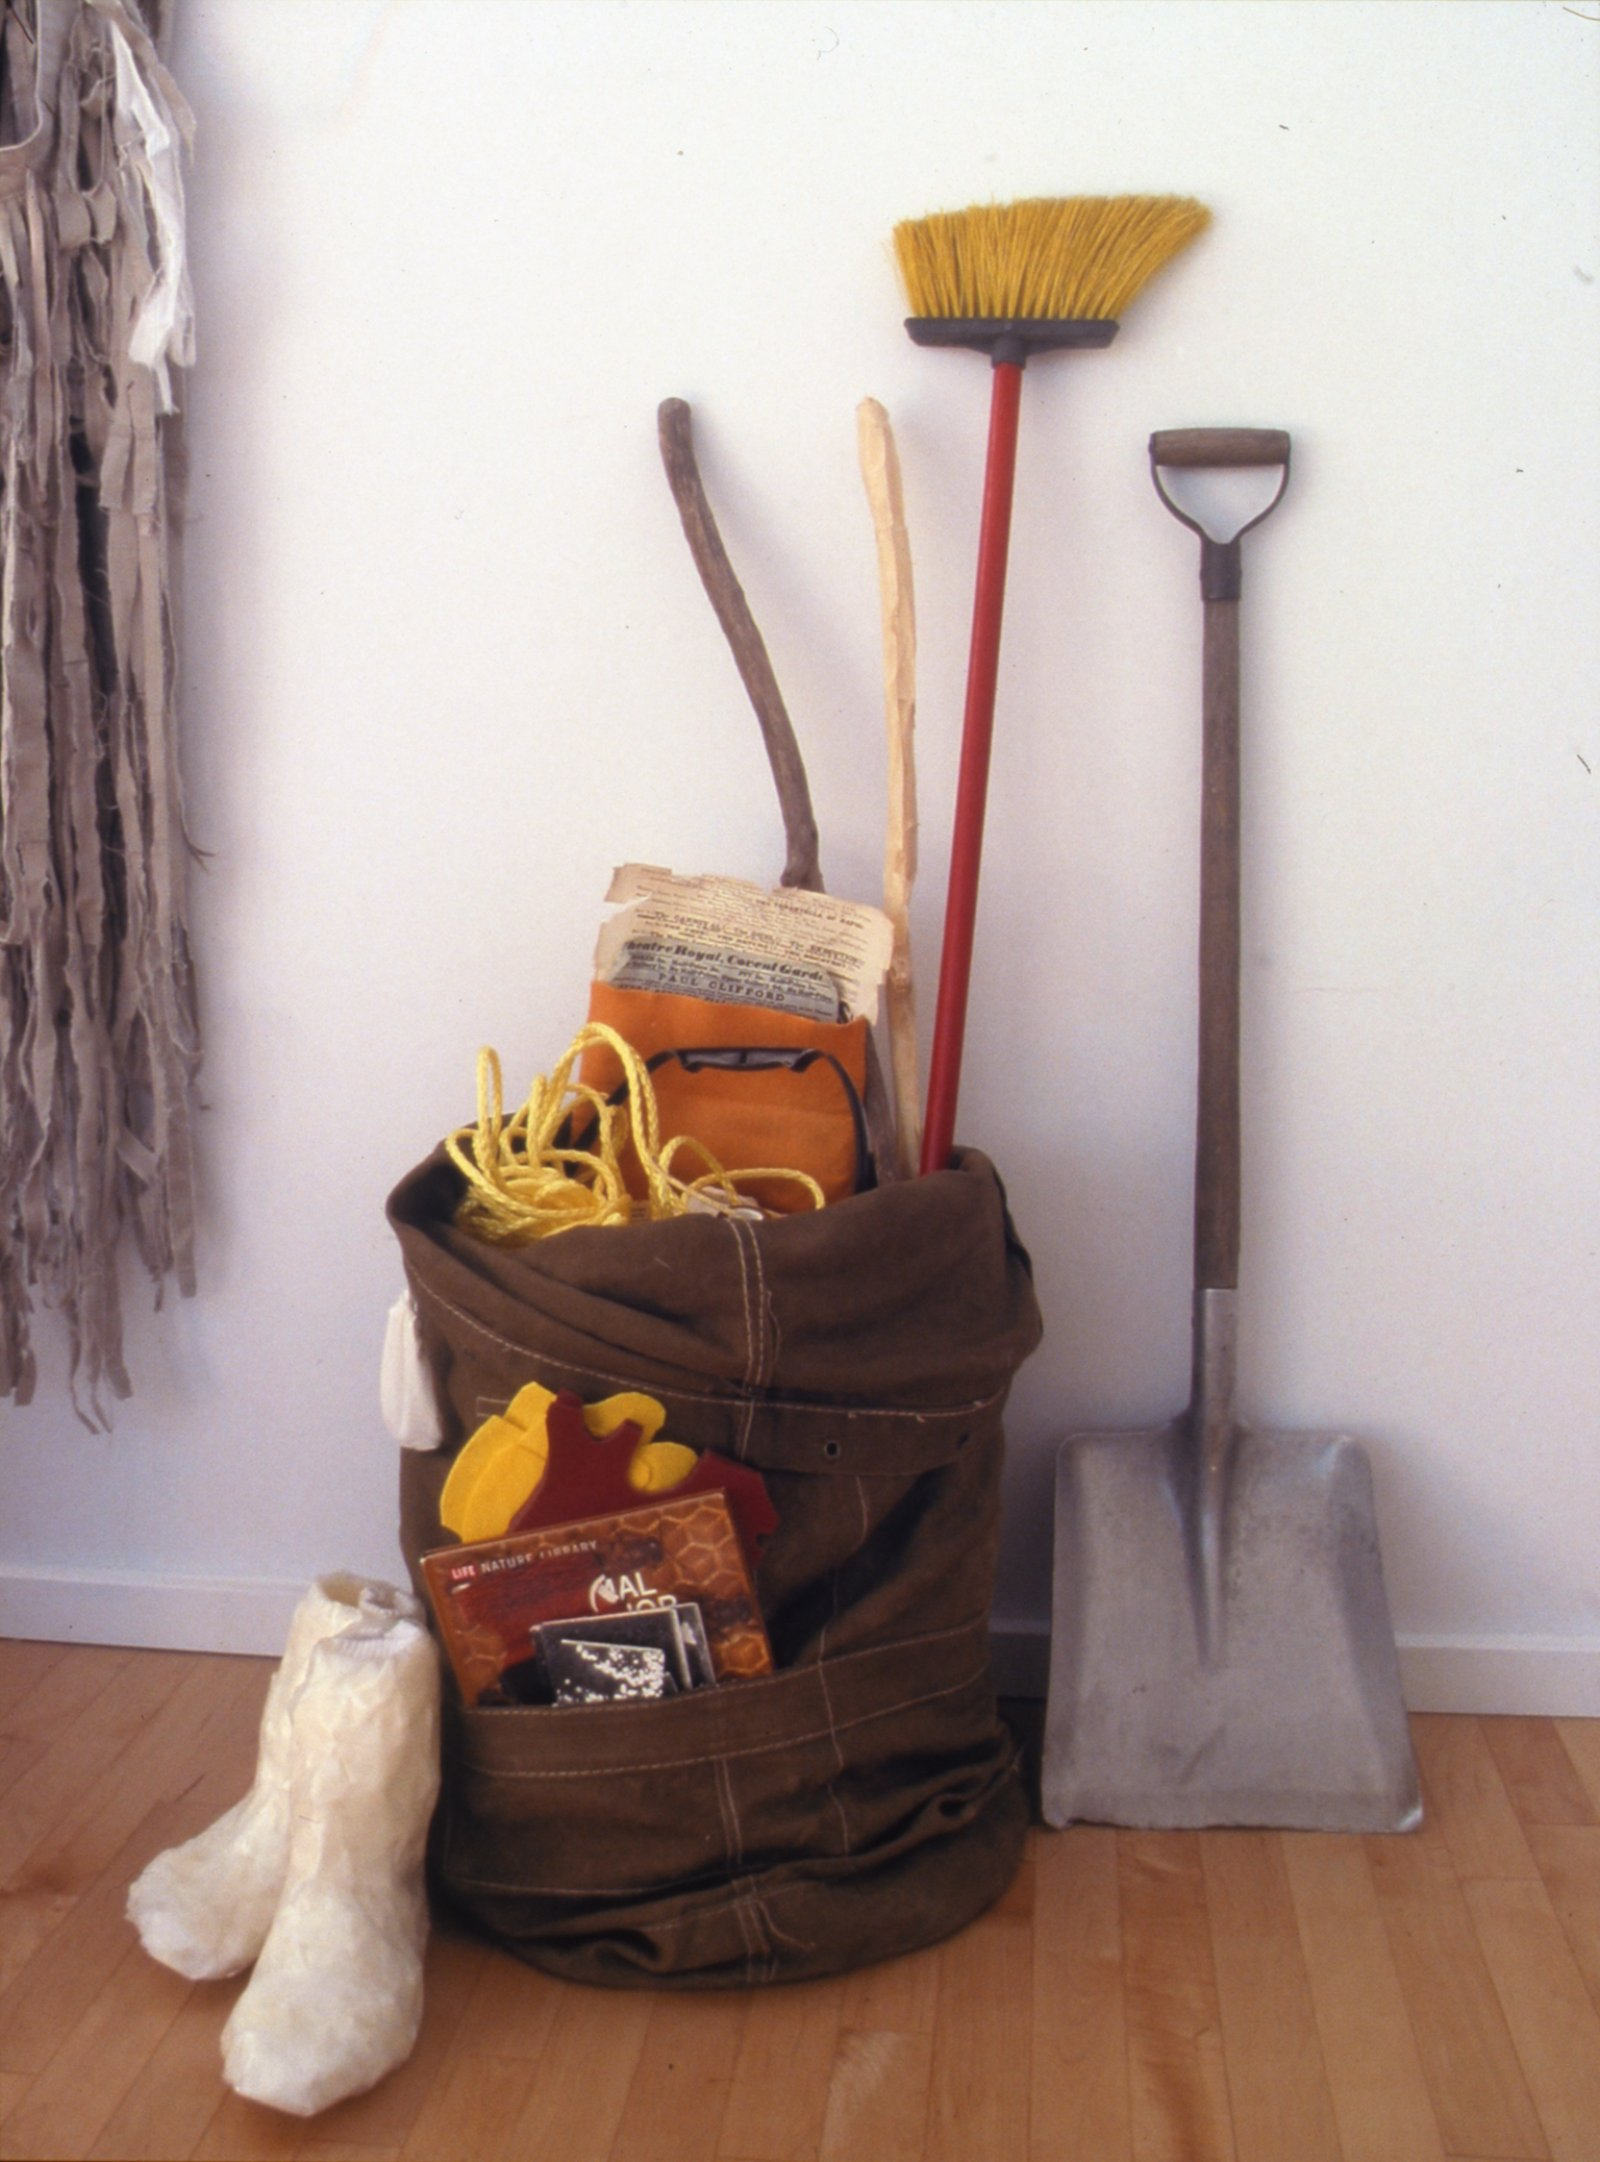 Geoffrey Farmer,Entrepreneur Alone Returning Back to Sculptural Form, 2002, mixed media, dimensions variable